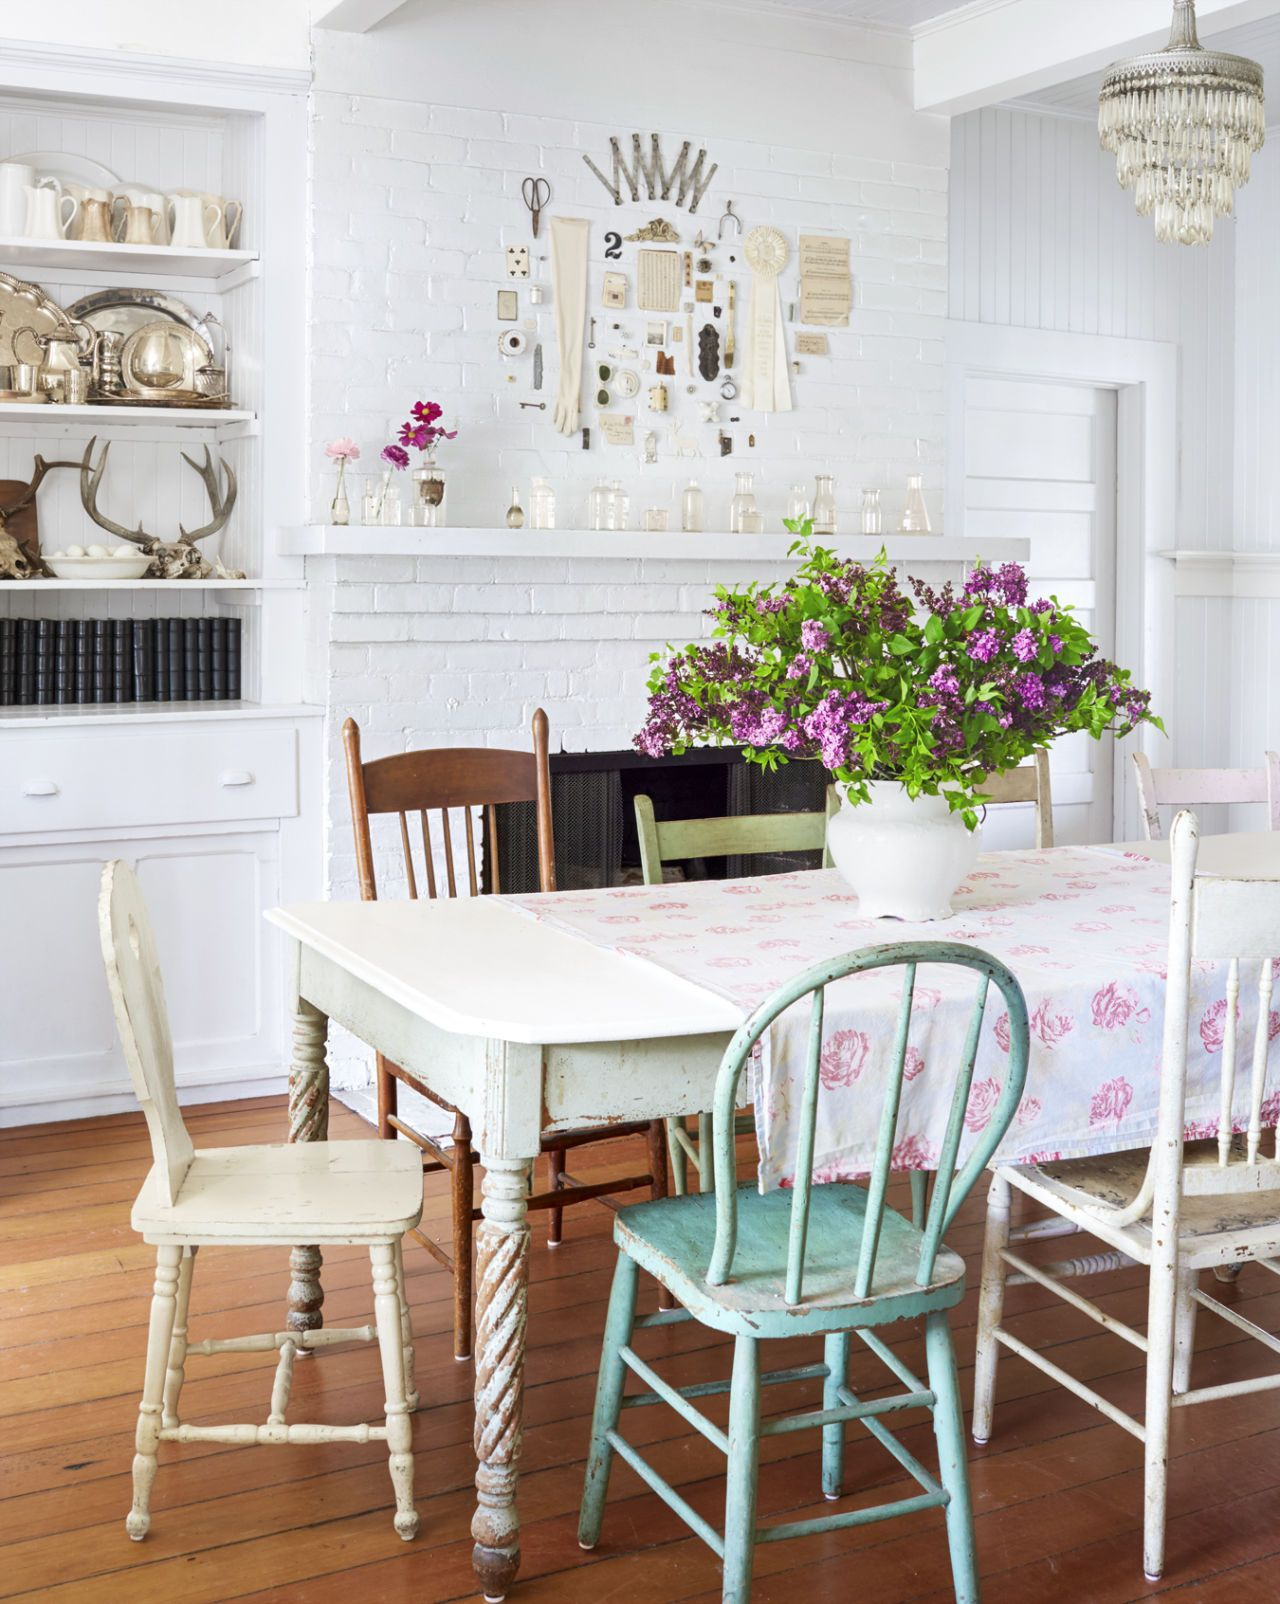 16 Vintage Decorating Ideas From Inside a 19thCentury